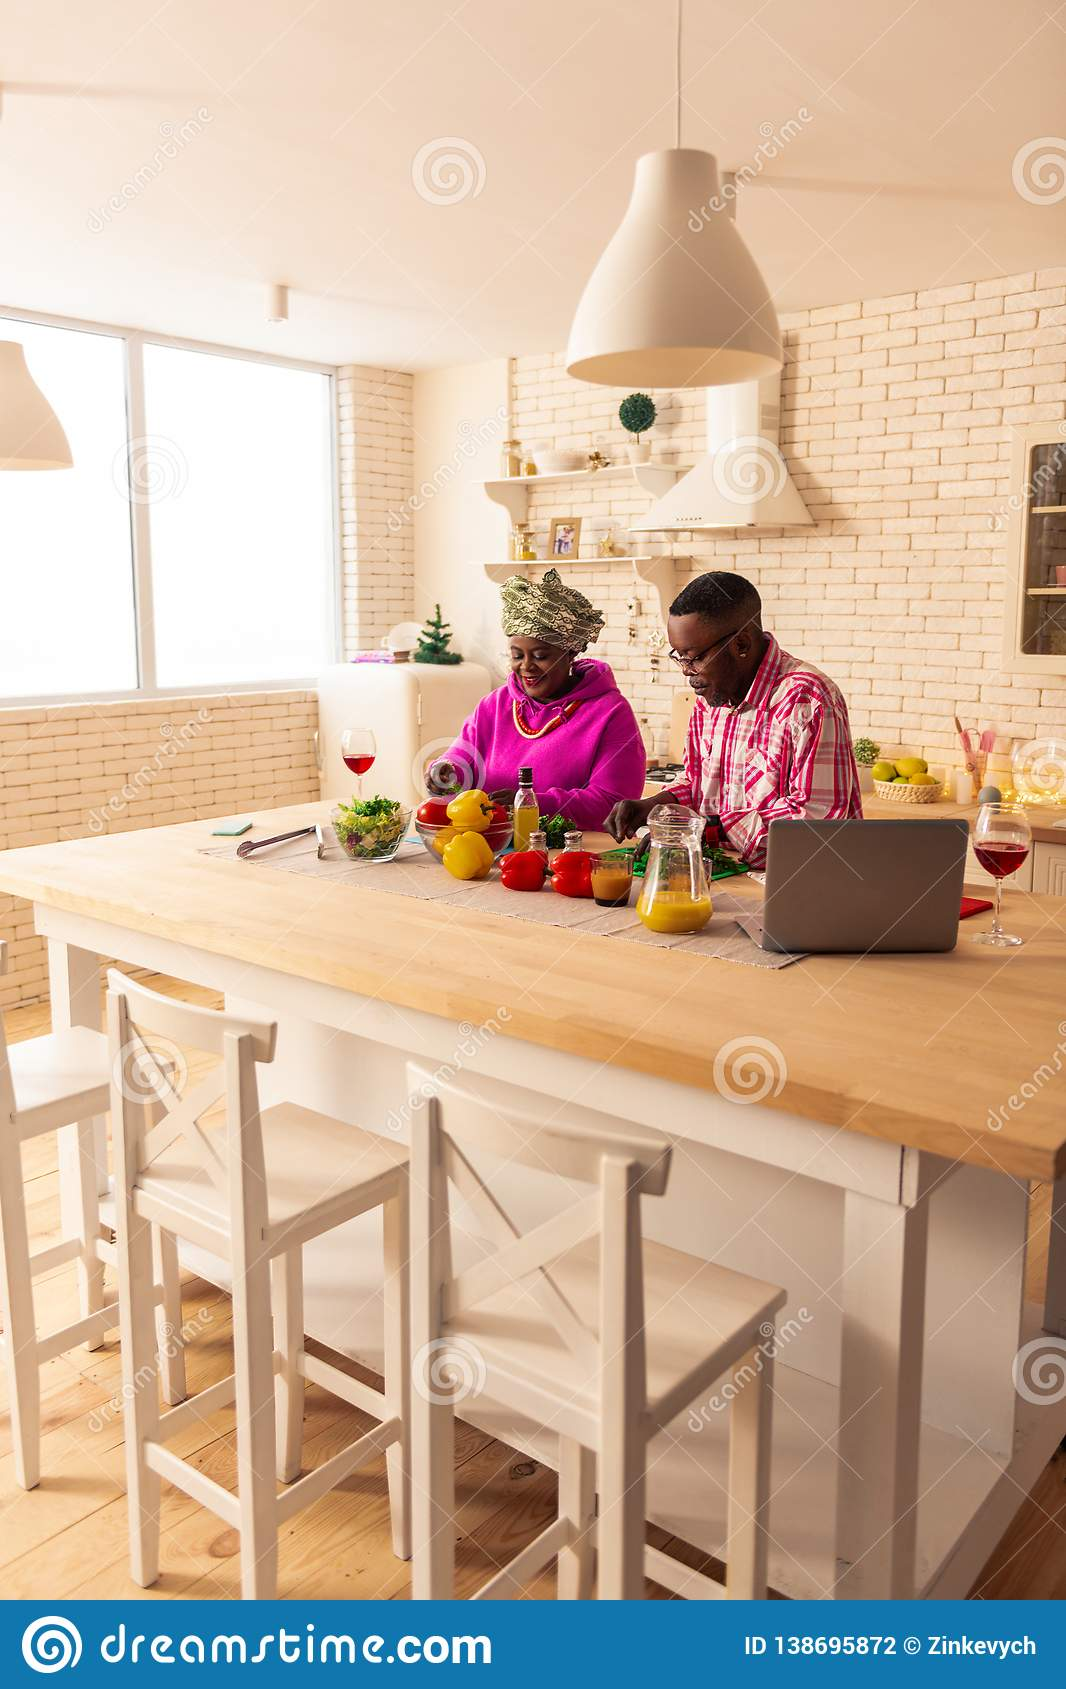 1 969 Traditional African Kitchen Photos Free Royalty Free Stock Photos From Dreamstime